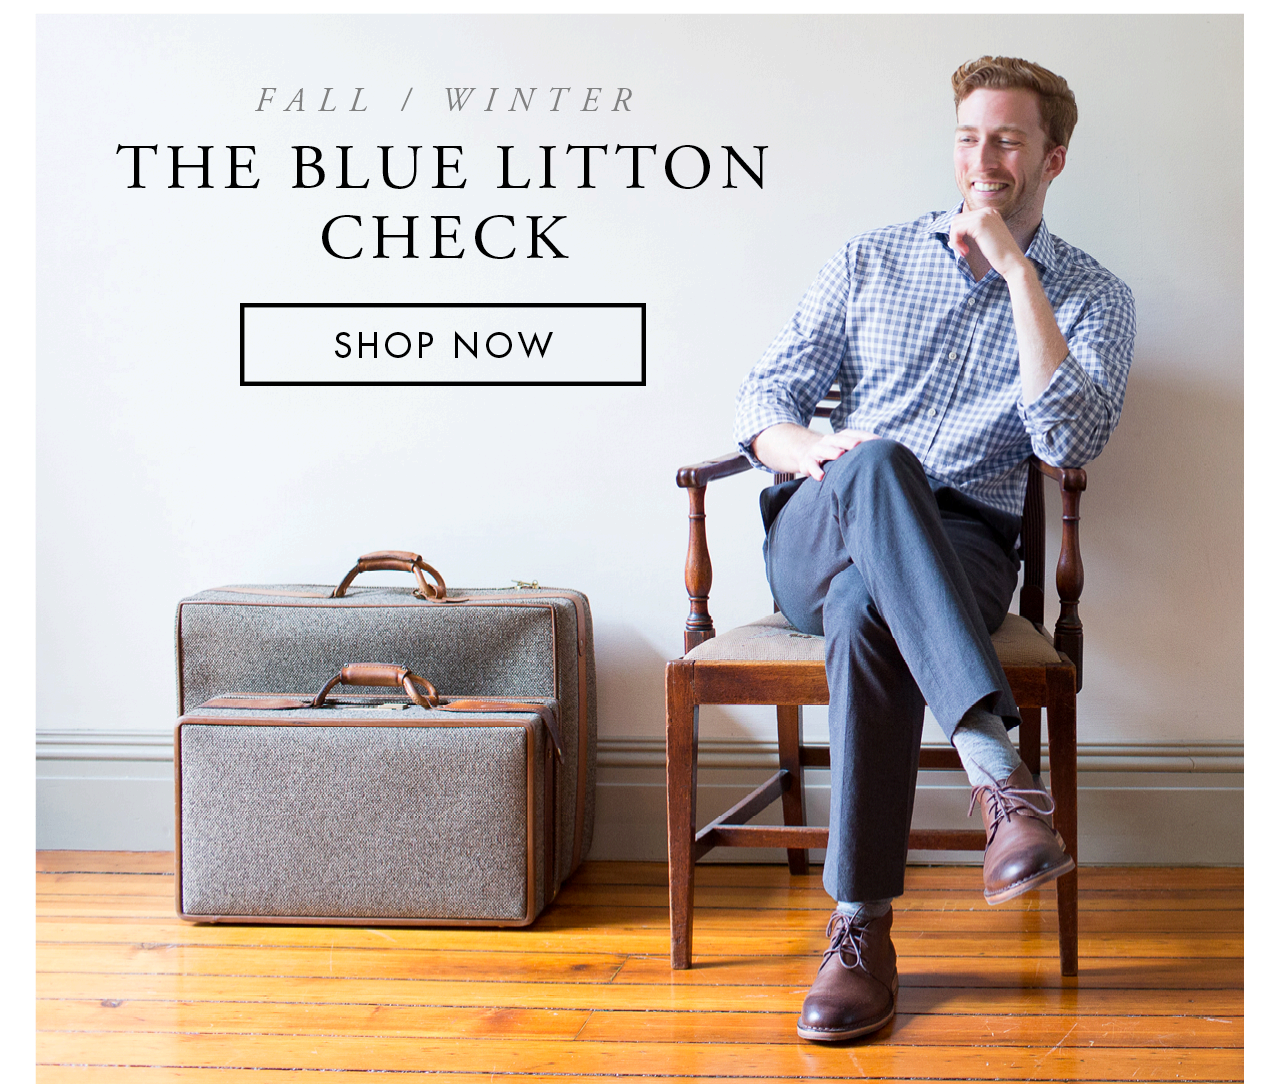 The Blue Litton Check